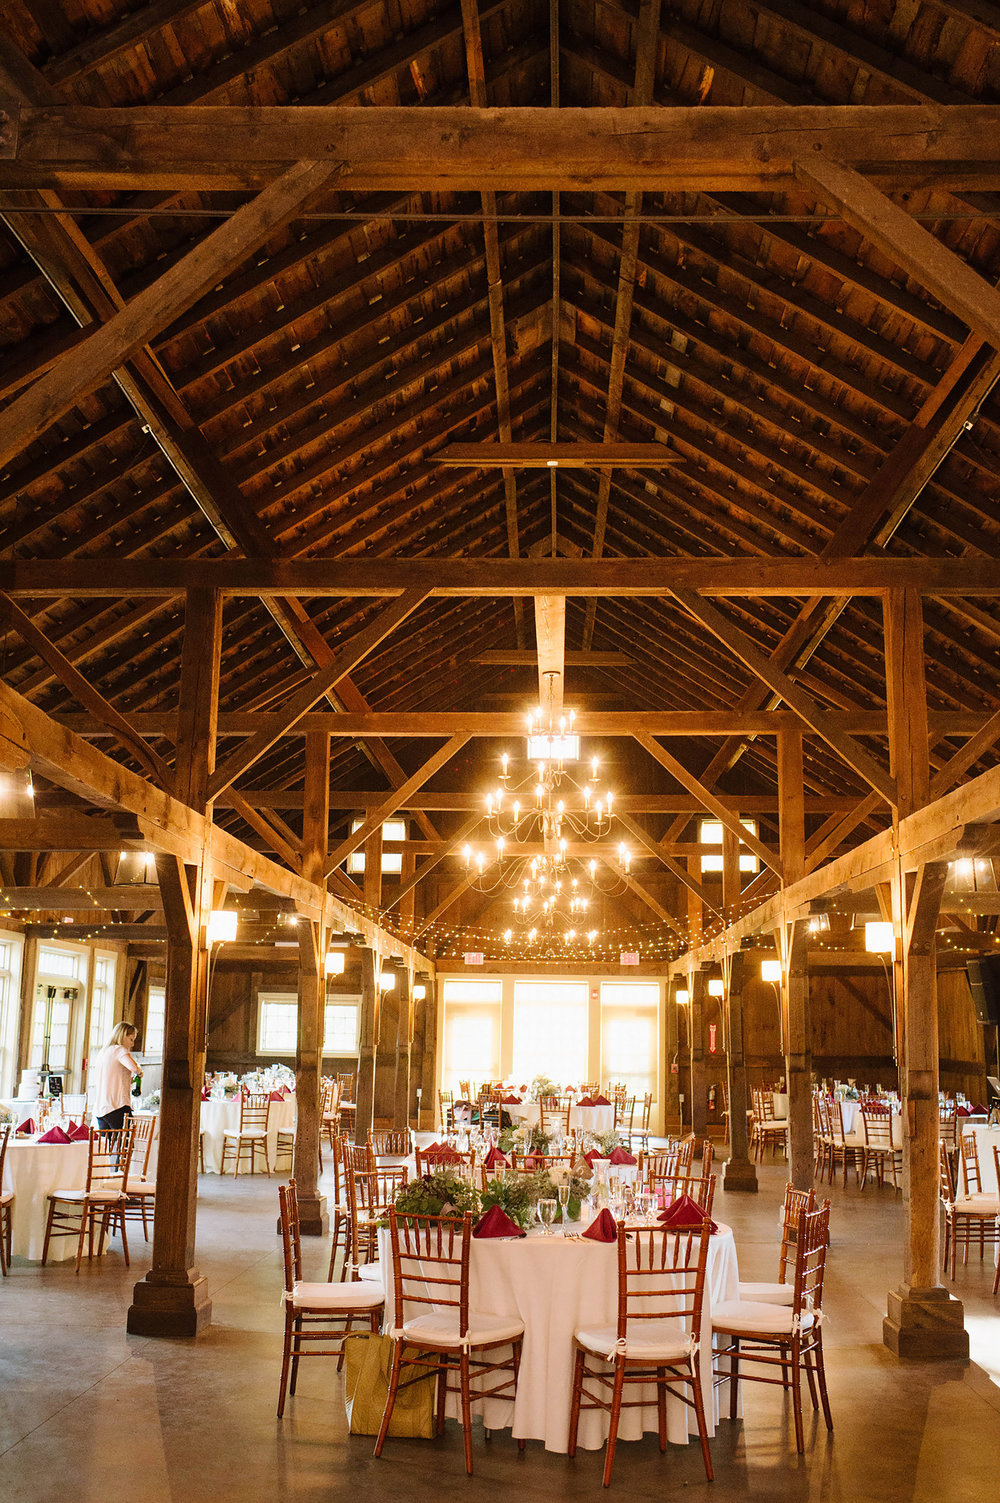 Inside the barn reception Space, Quonquont Farm